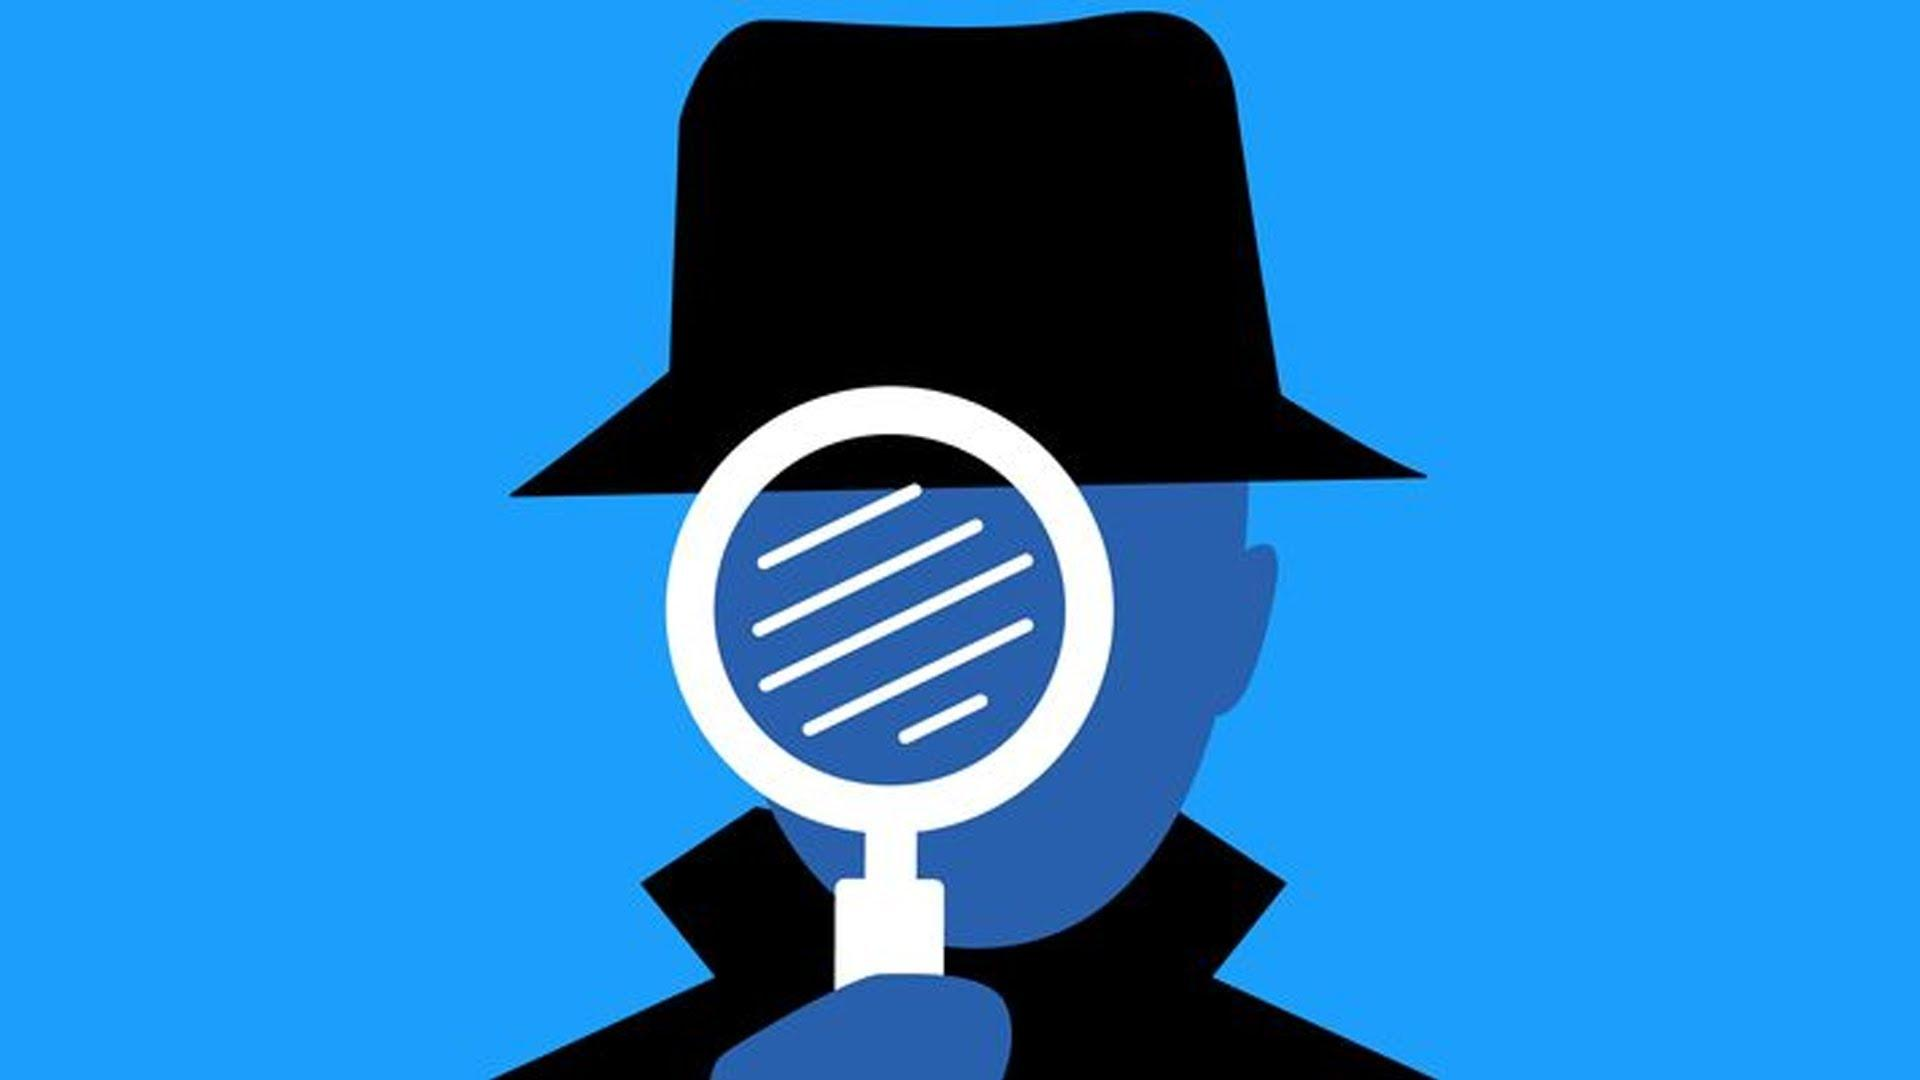 Ways to find competitor keywords spying corporate espionage concept